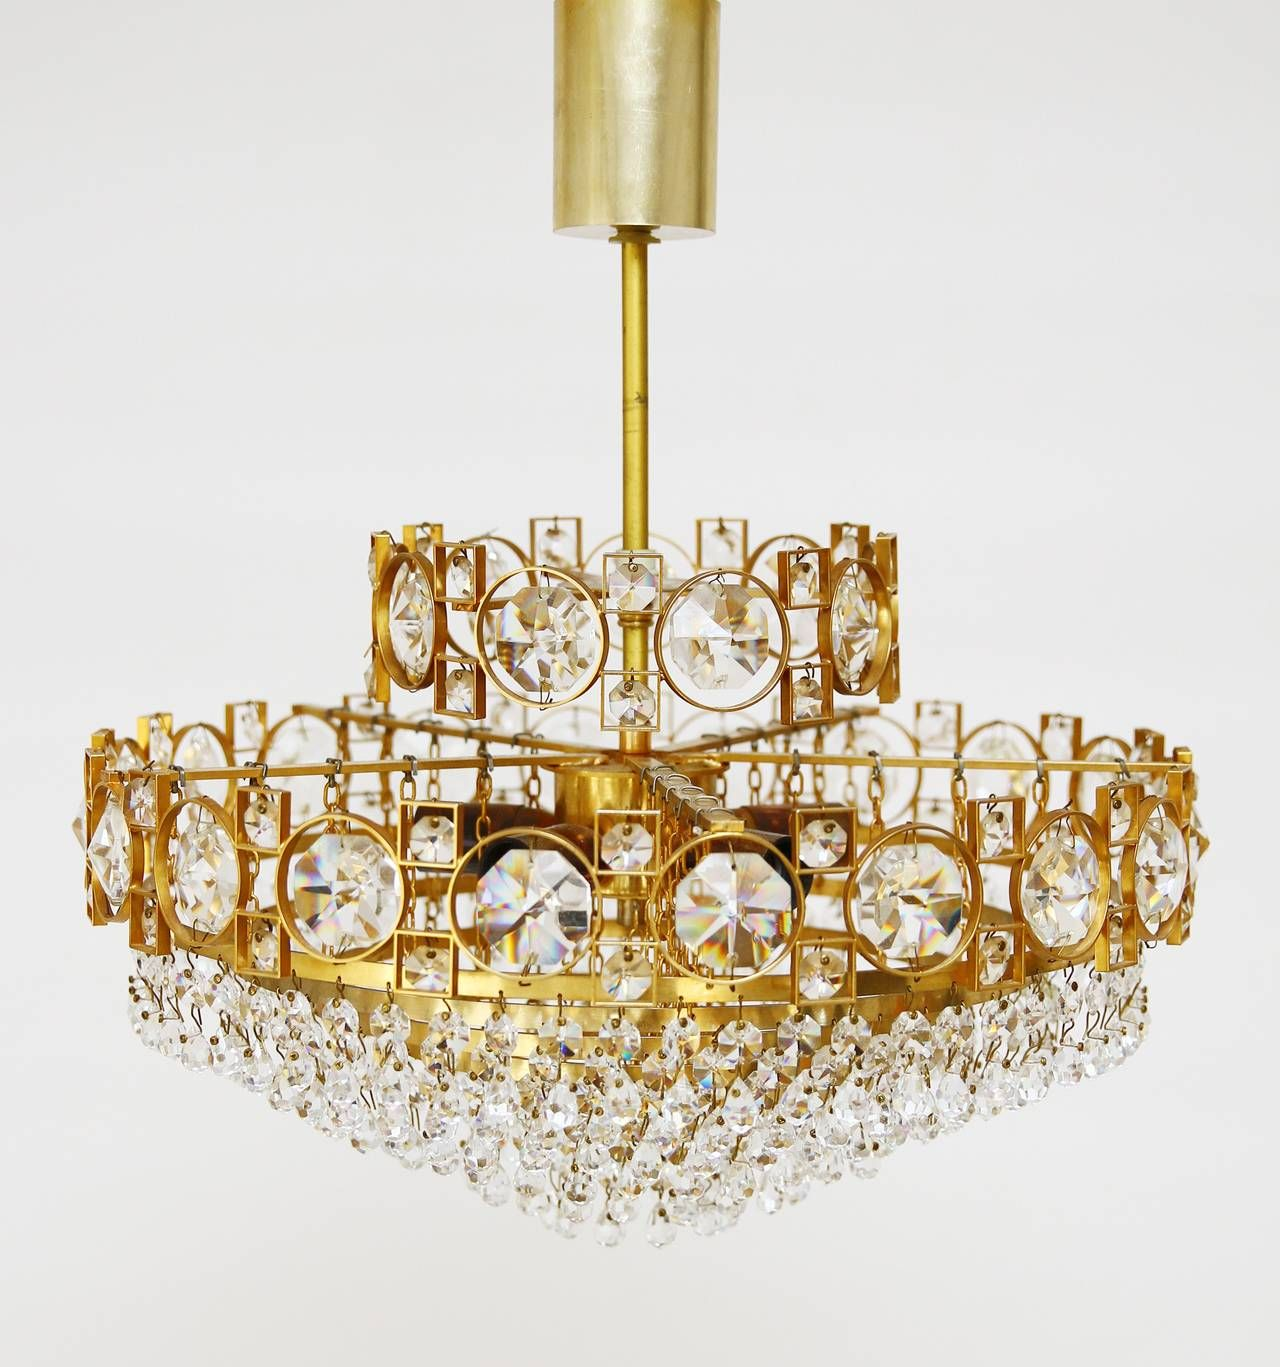 Gilt brass sciolari style crystal glass chandelier or flush mount gilt brass sciolari style crystal glass chandelier or flush mount italy 1960s mozeypictures Image collections